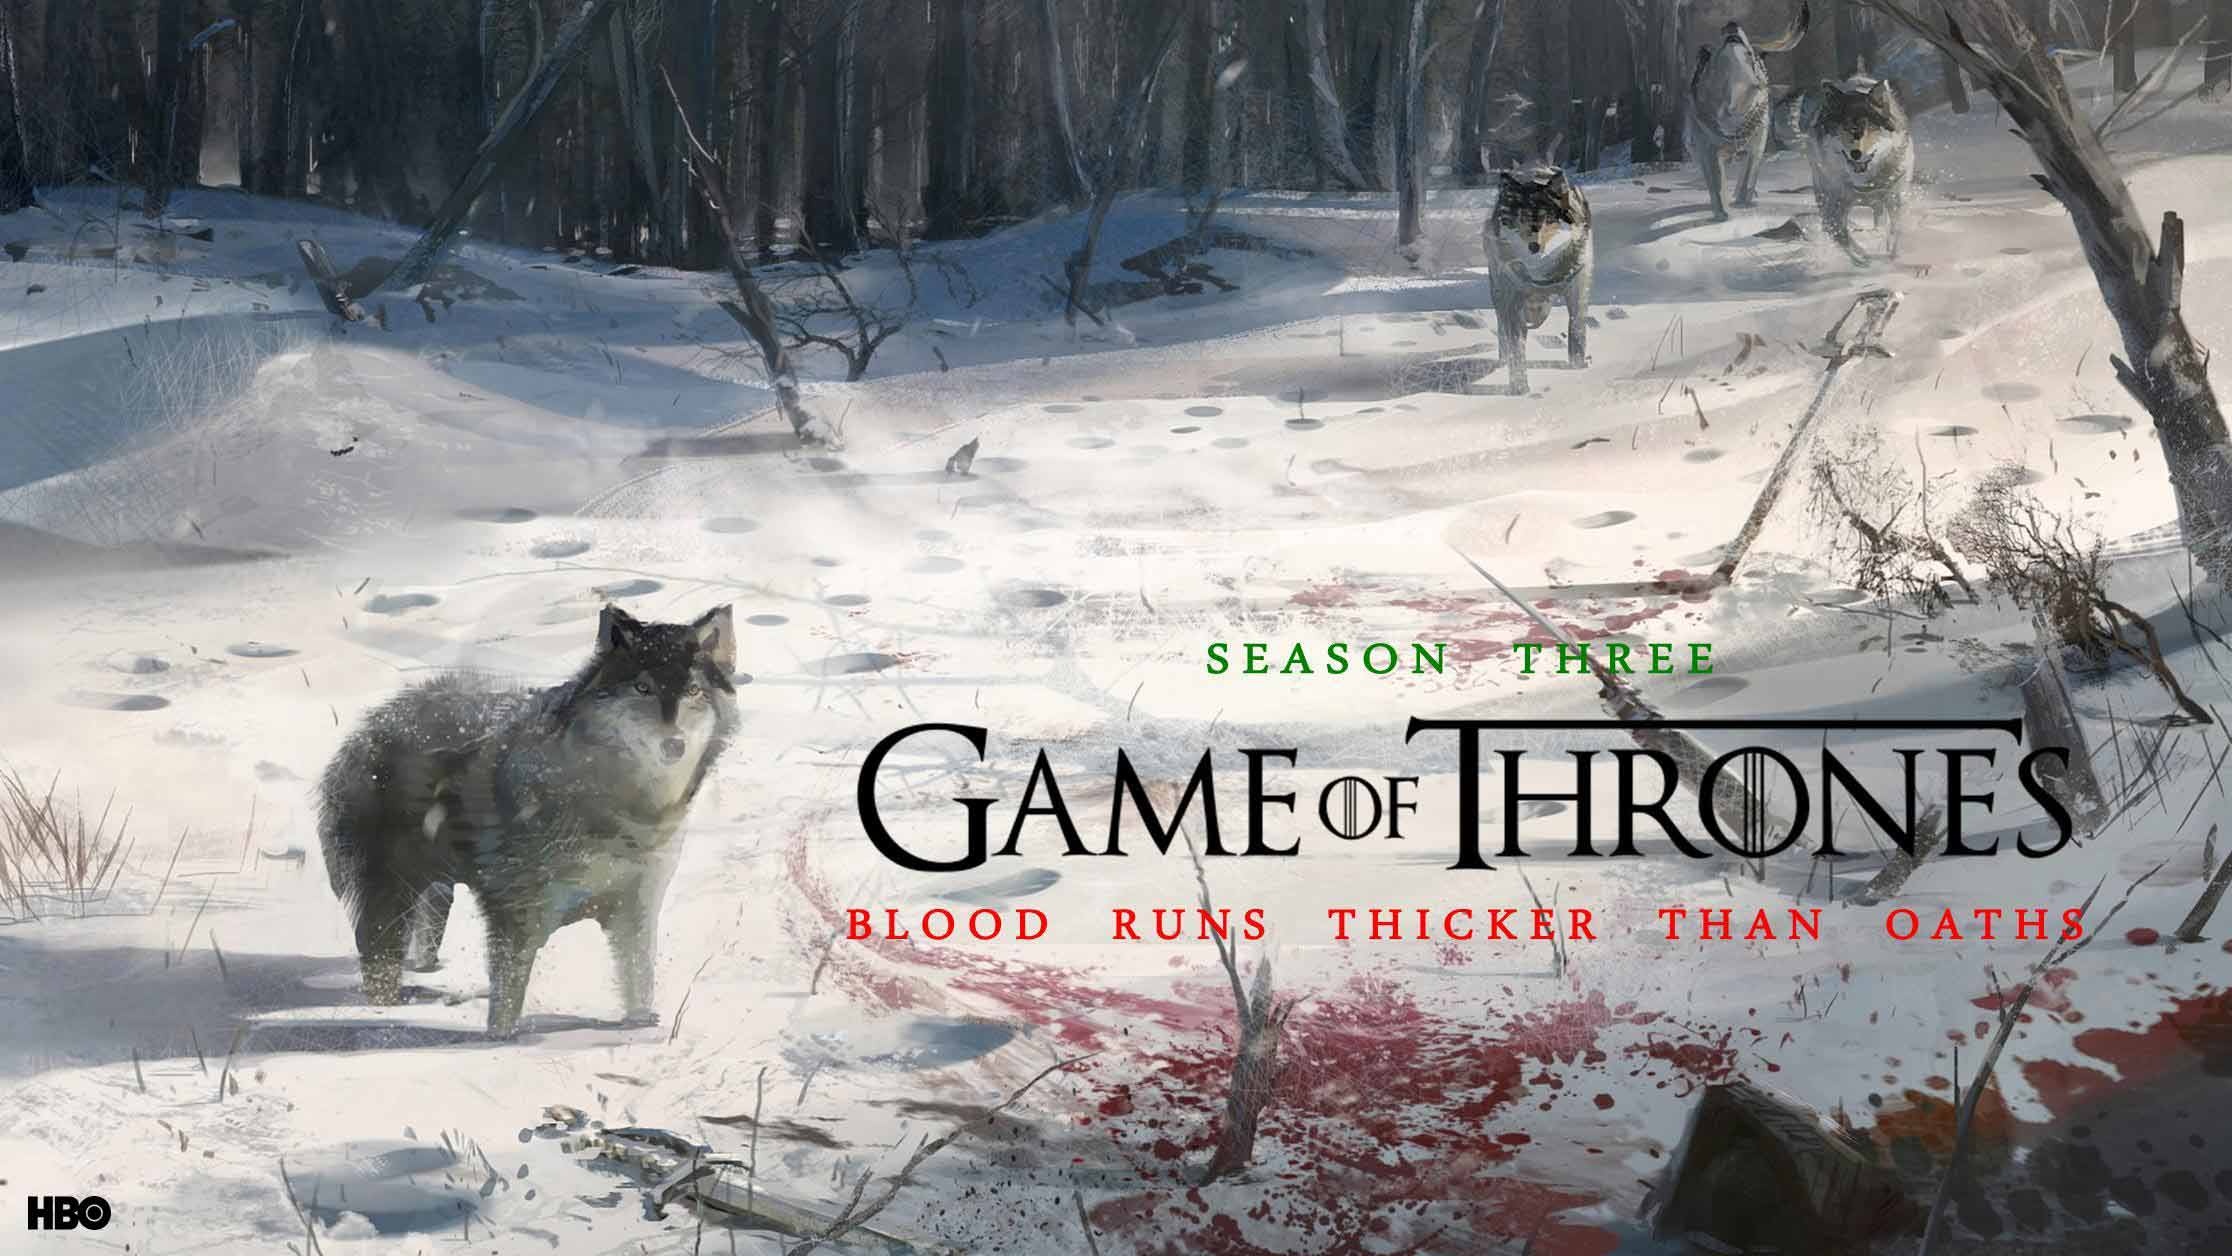 thrones hd wallpapers new game of thrones winter is coming wallpapers3 2232x1256